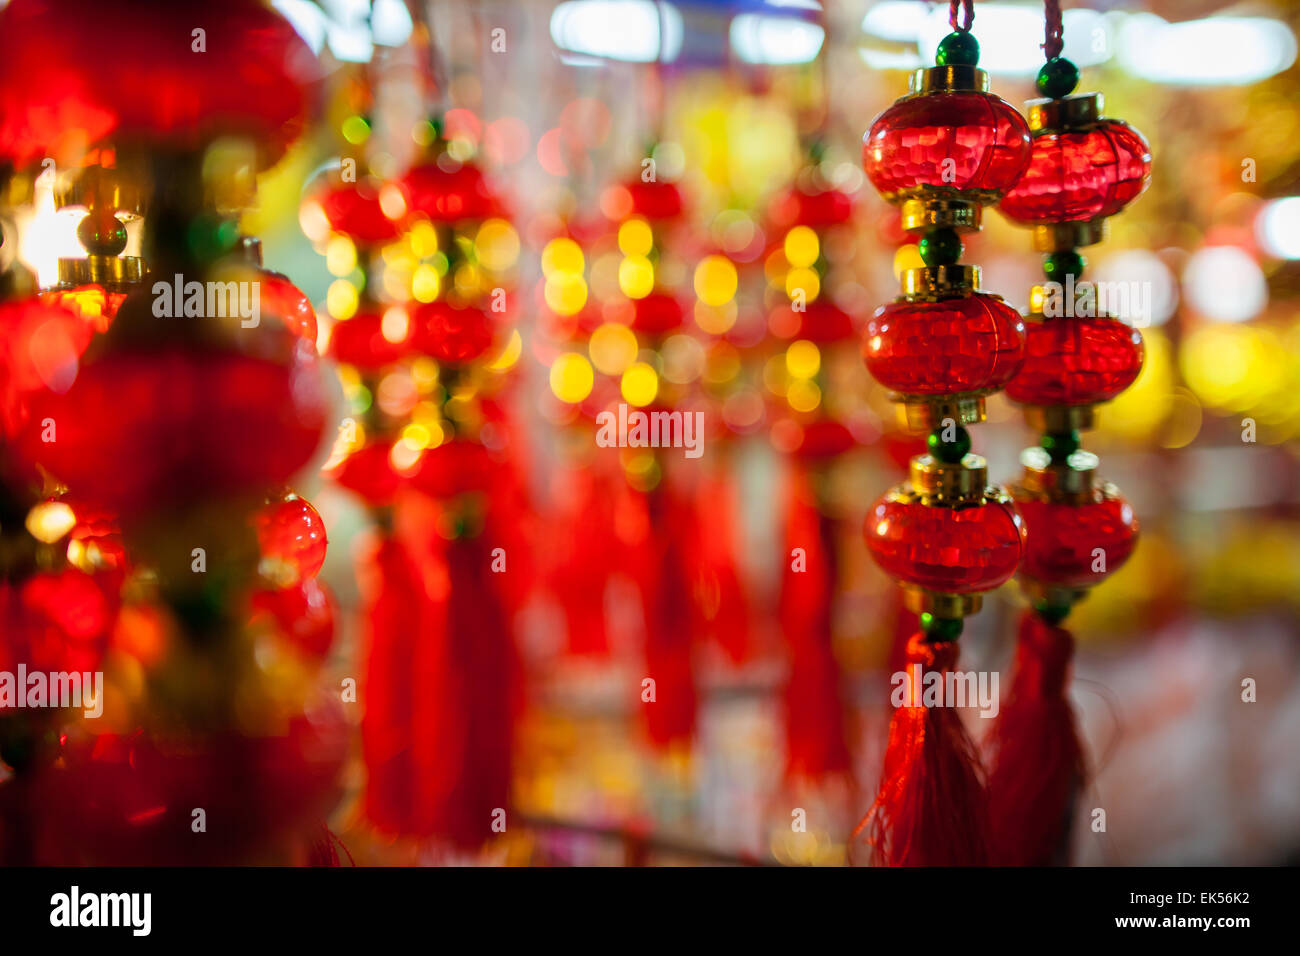 chinese new year decoration in red and gold colours - Stock Image